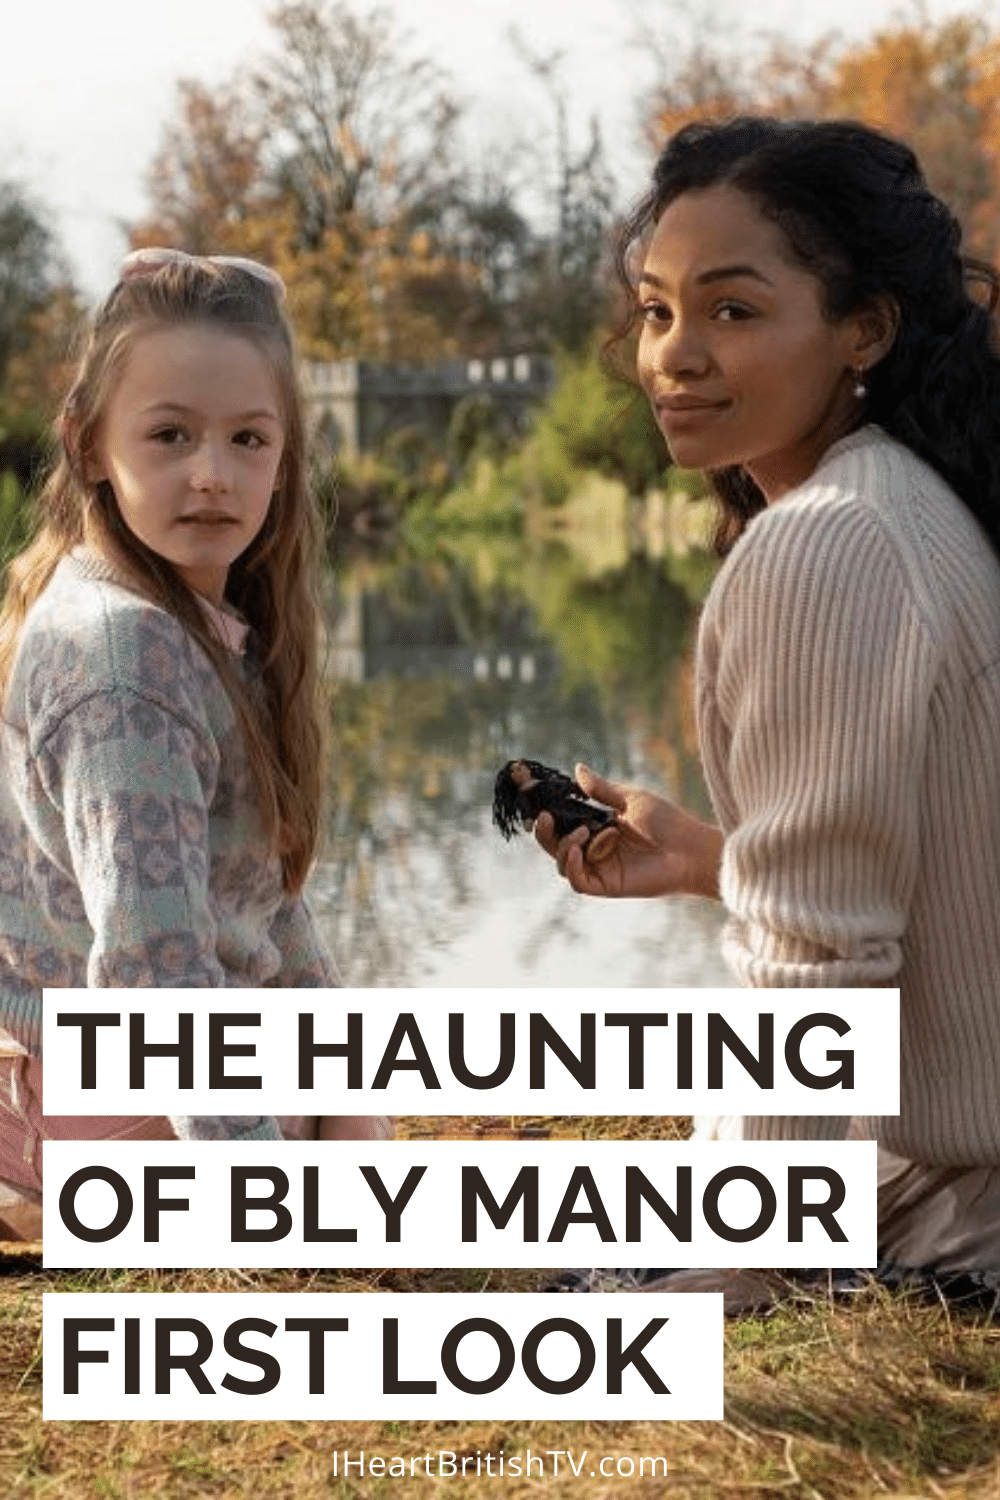 The Haunting of Bly Manor: An Adaptation of The Turn of the Screw 7